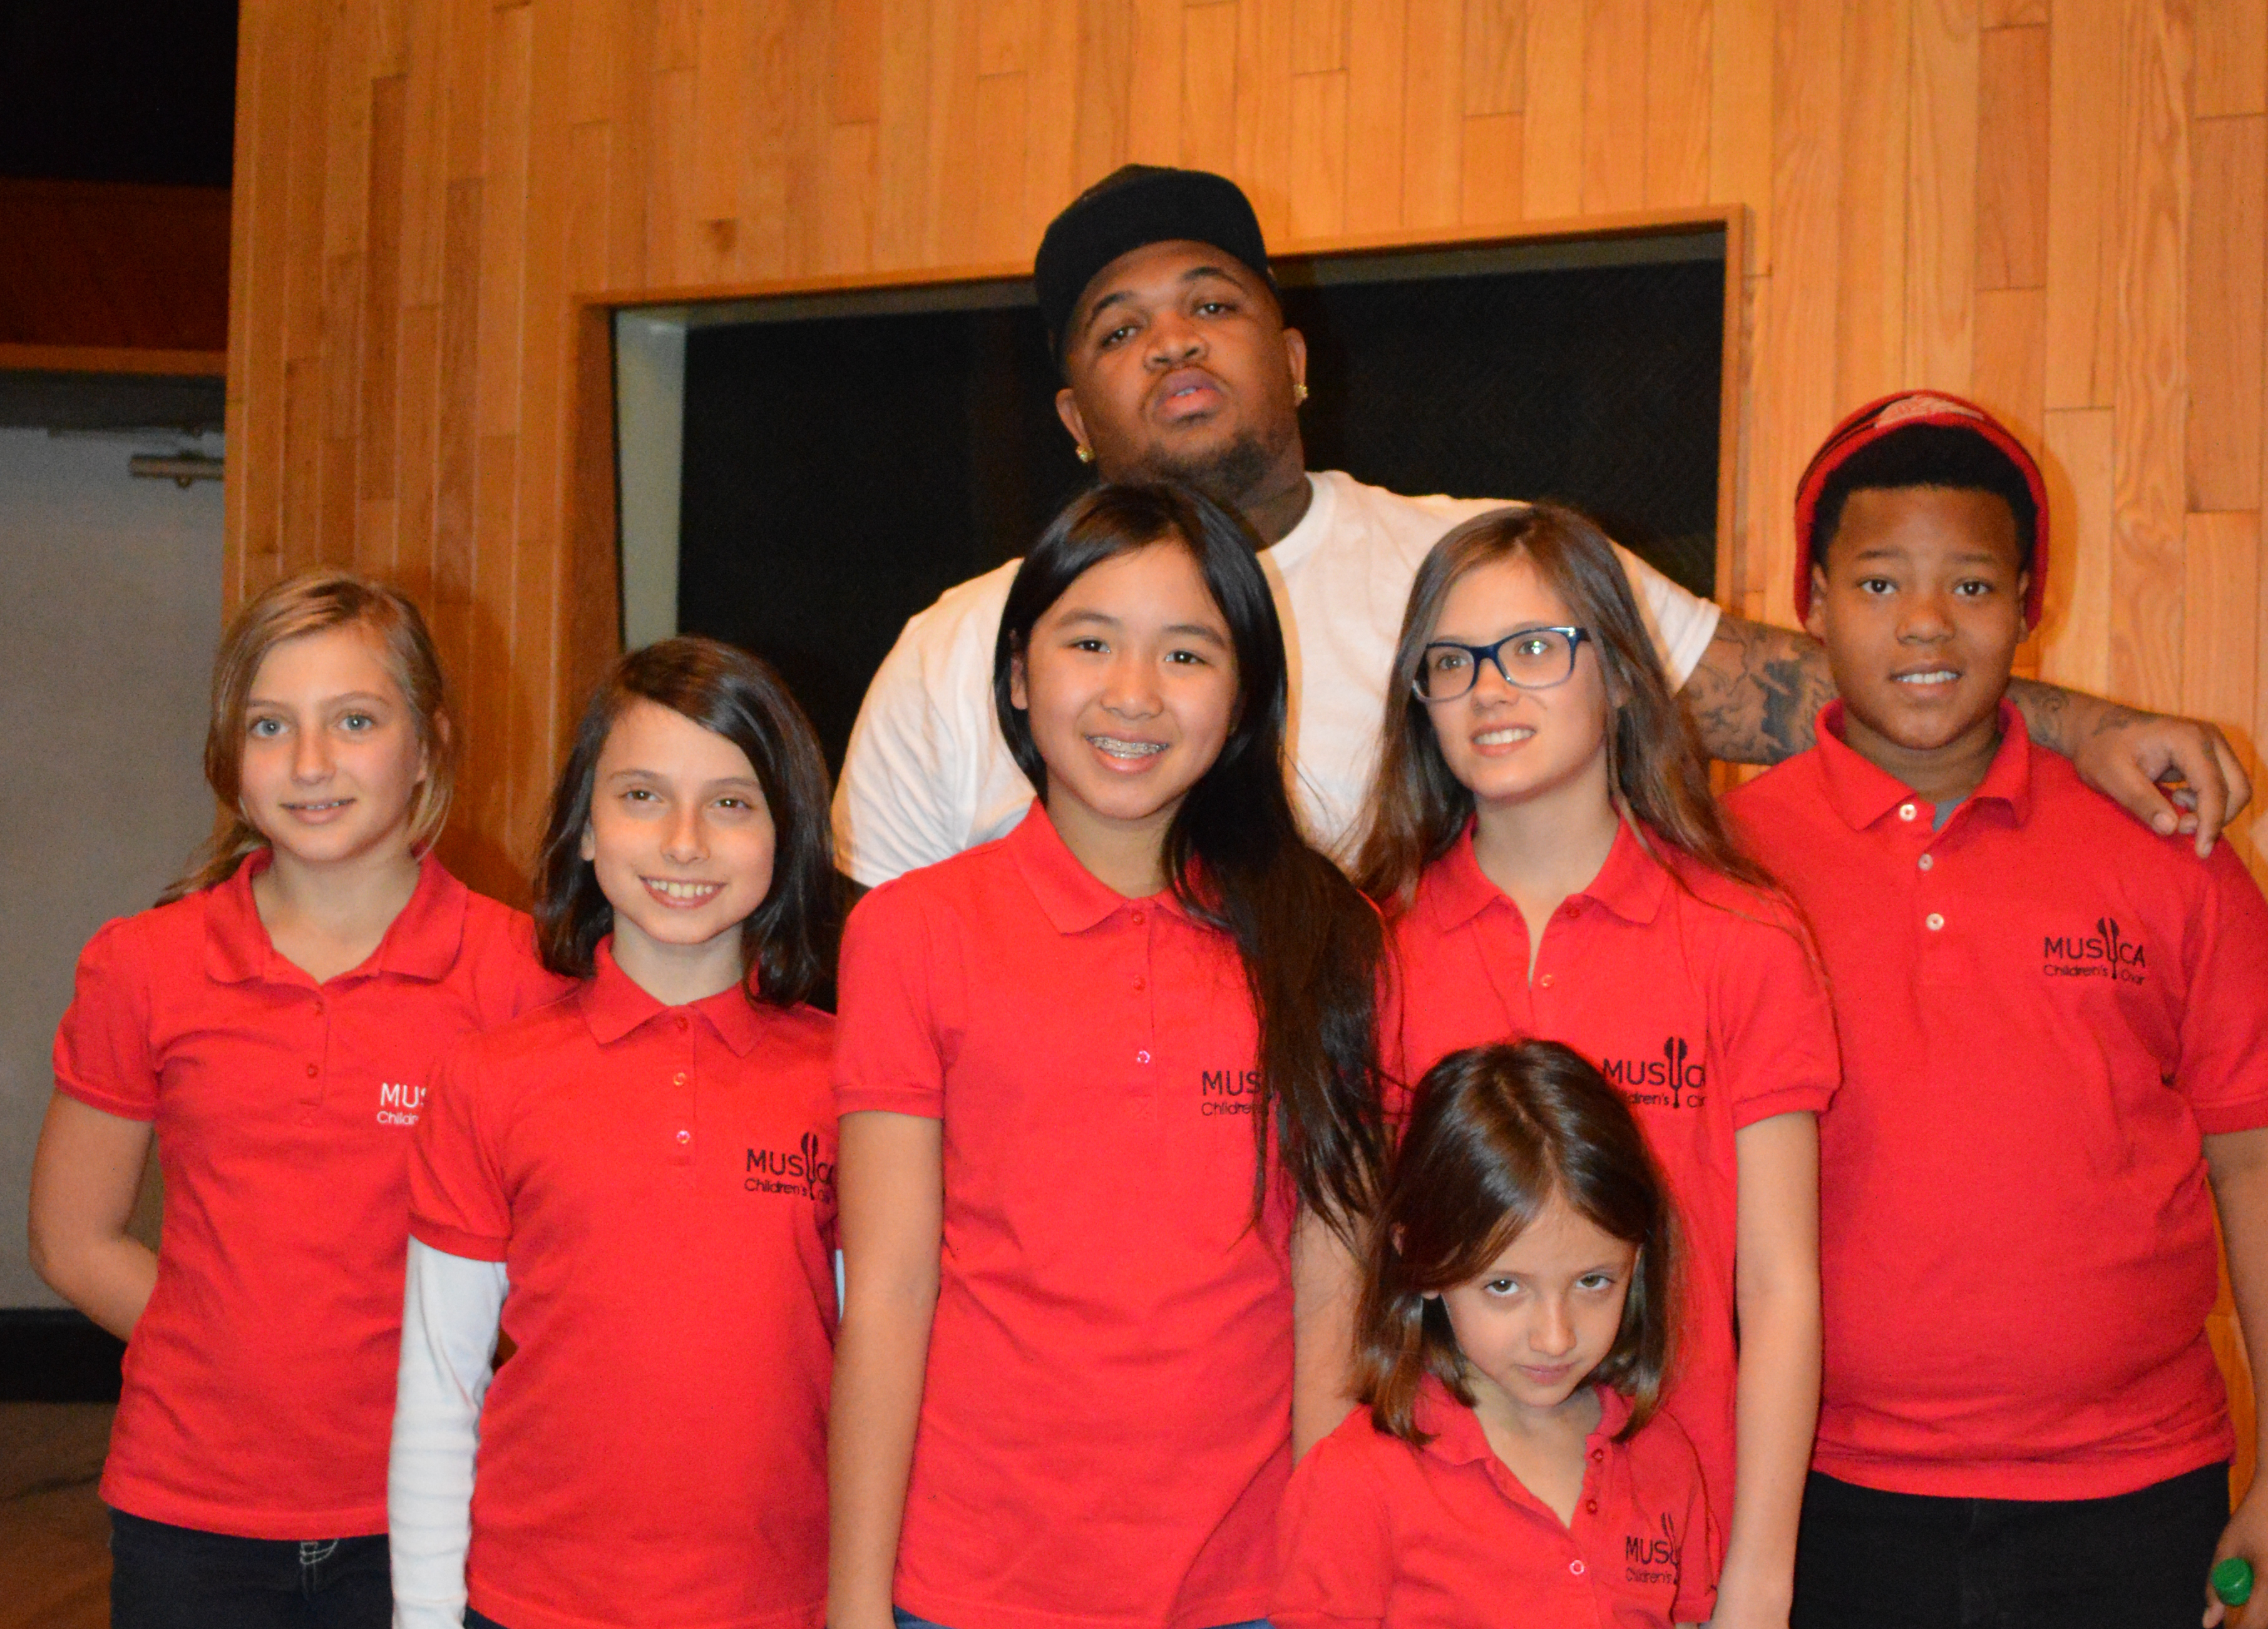 MUSYCA kids record with DJ Mustard